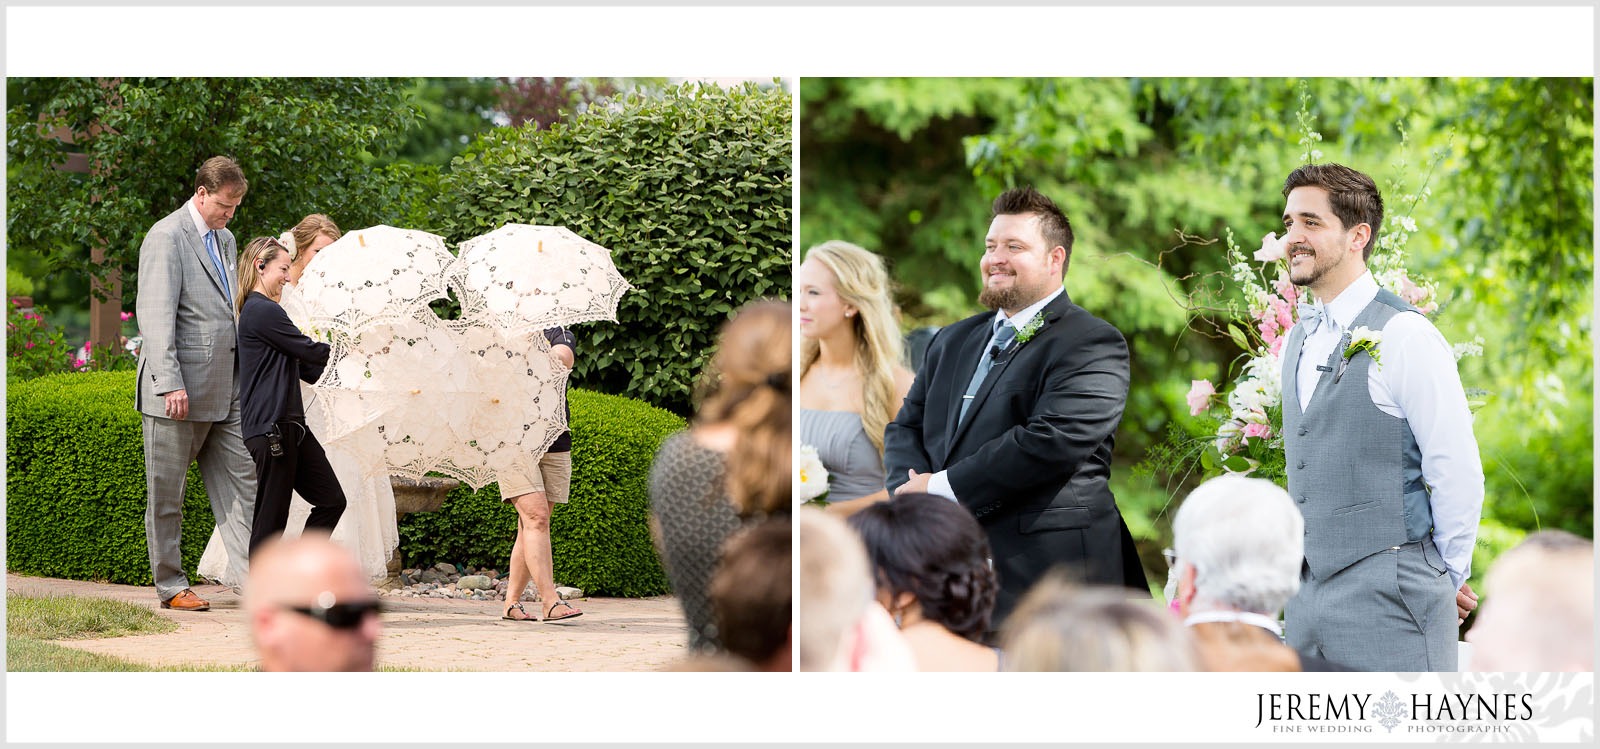 Randy + Lindsay  Mustard Seed Gardens Noblesville, IN Wedding Pictures 20.jpg